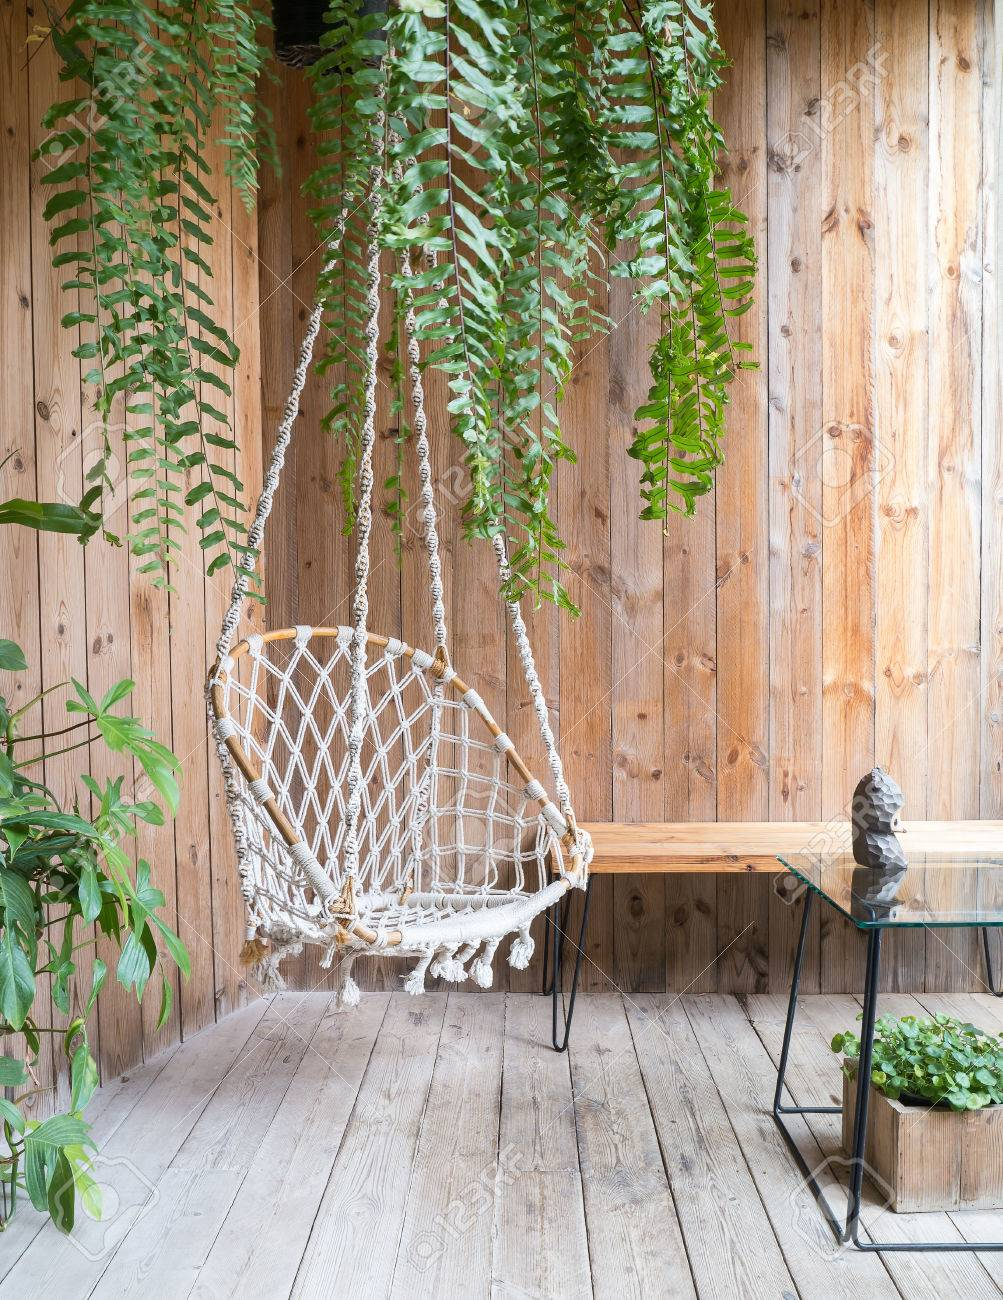 Merveilleux Rope Swing Chair In Relax Zone Garden Stock Photo   67398678